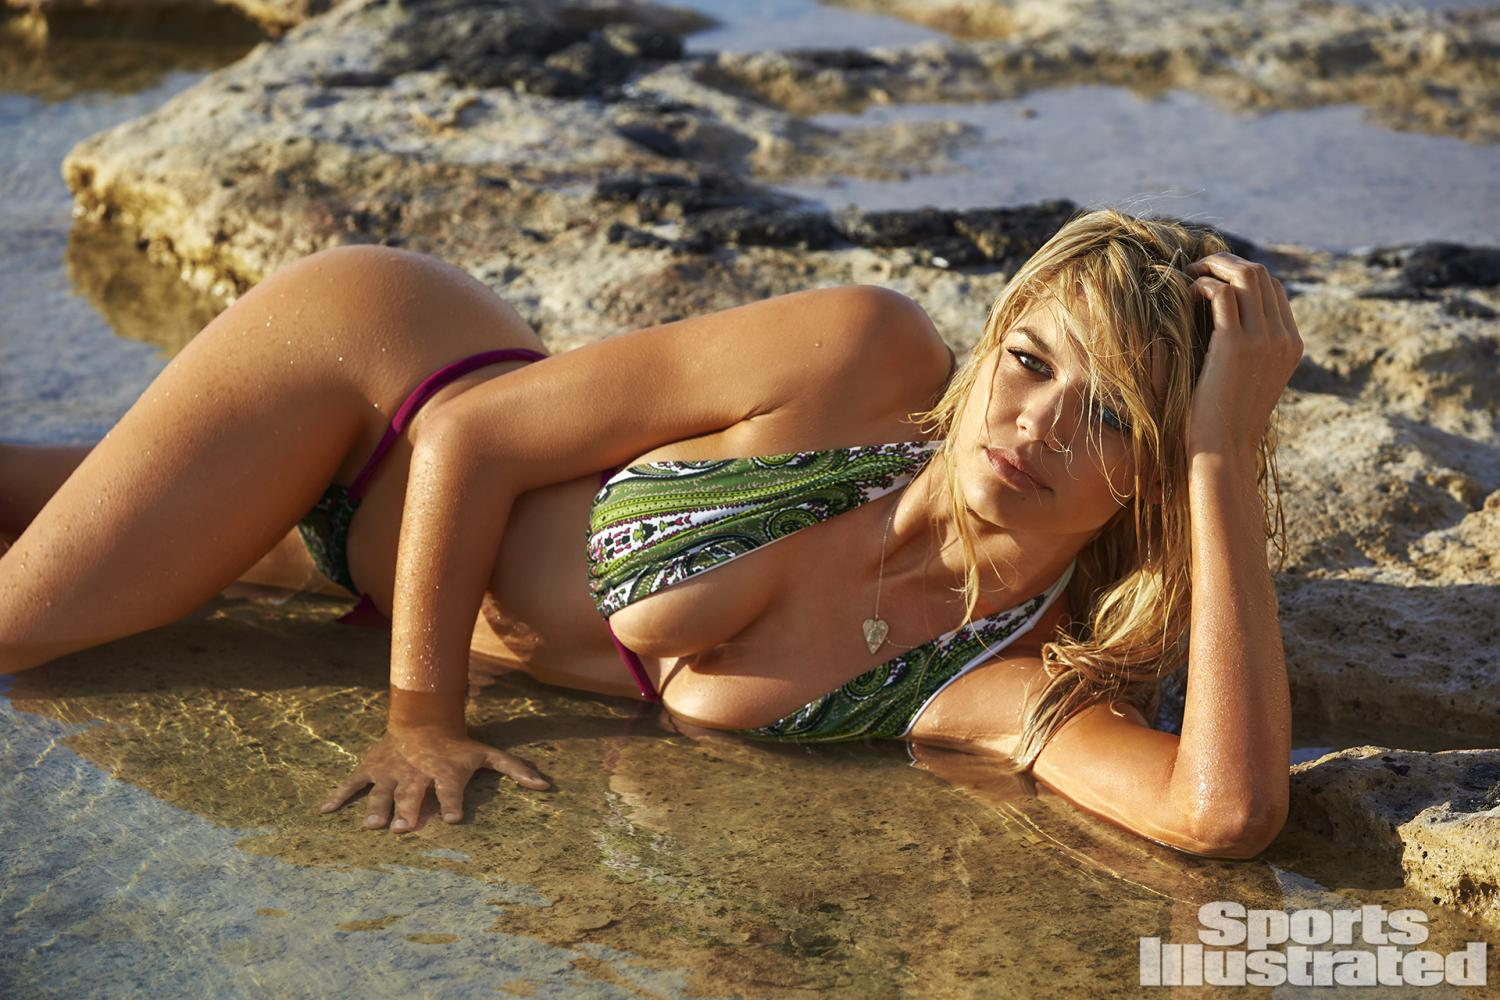 baywatch babe kelly-rohrbach shines in sexy 2016-sports-illustrated swimsuit edition 11